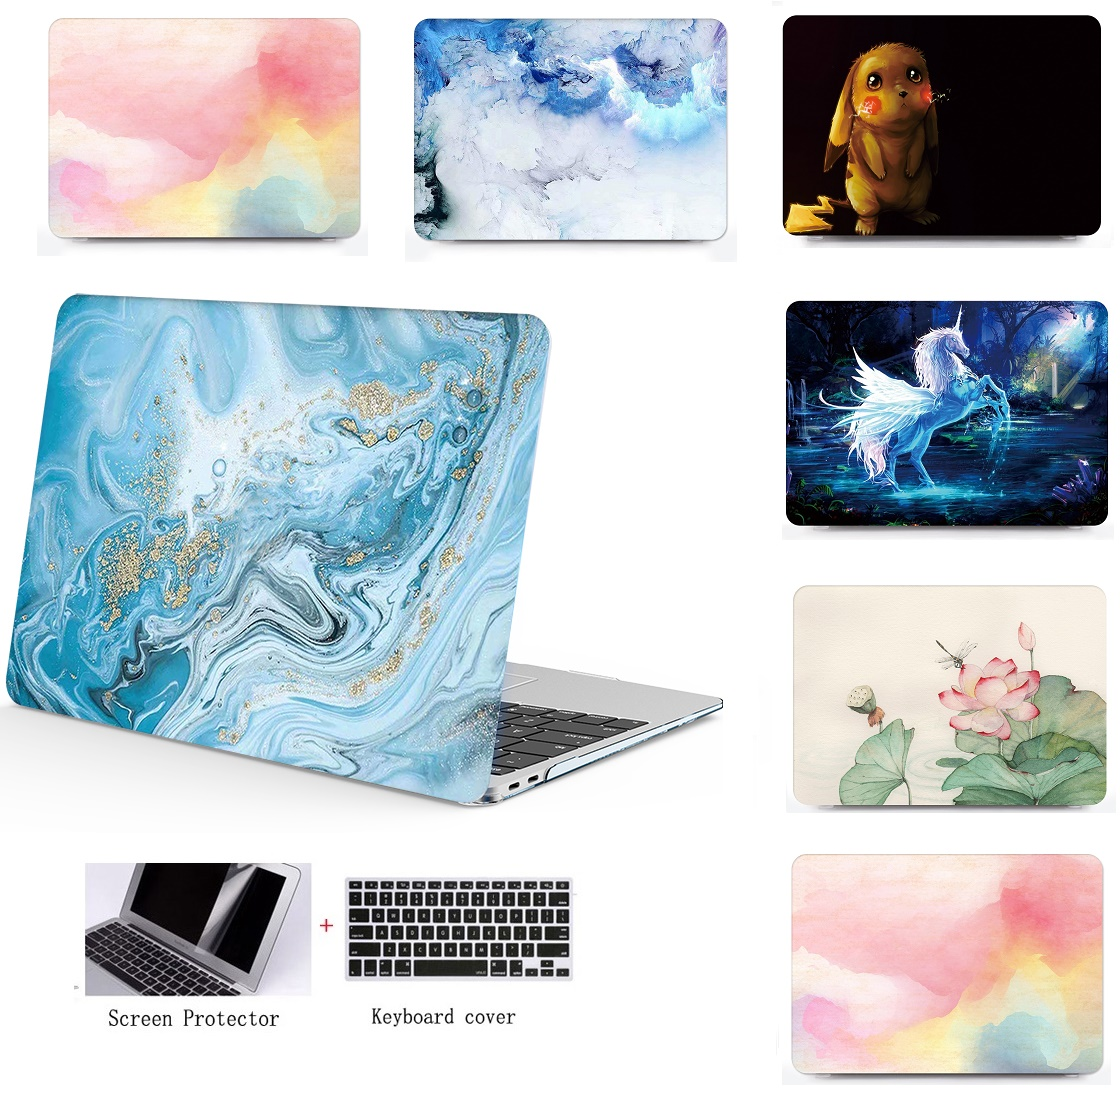 3in1 New Marble Pattern Laptop Case For Apple Macbook Air 11 13 Pro Retina 12 13 15inch Colors Touch Bar Laptop Cover Shell Case